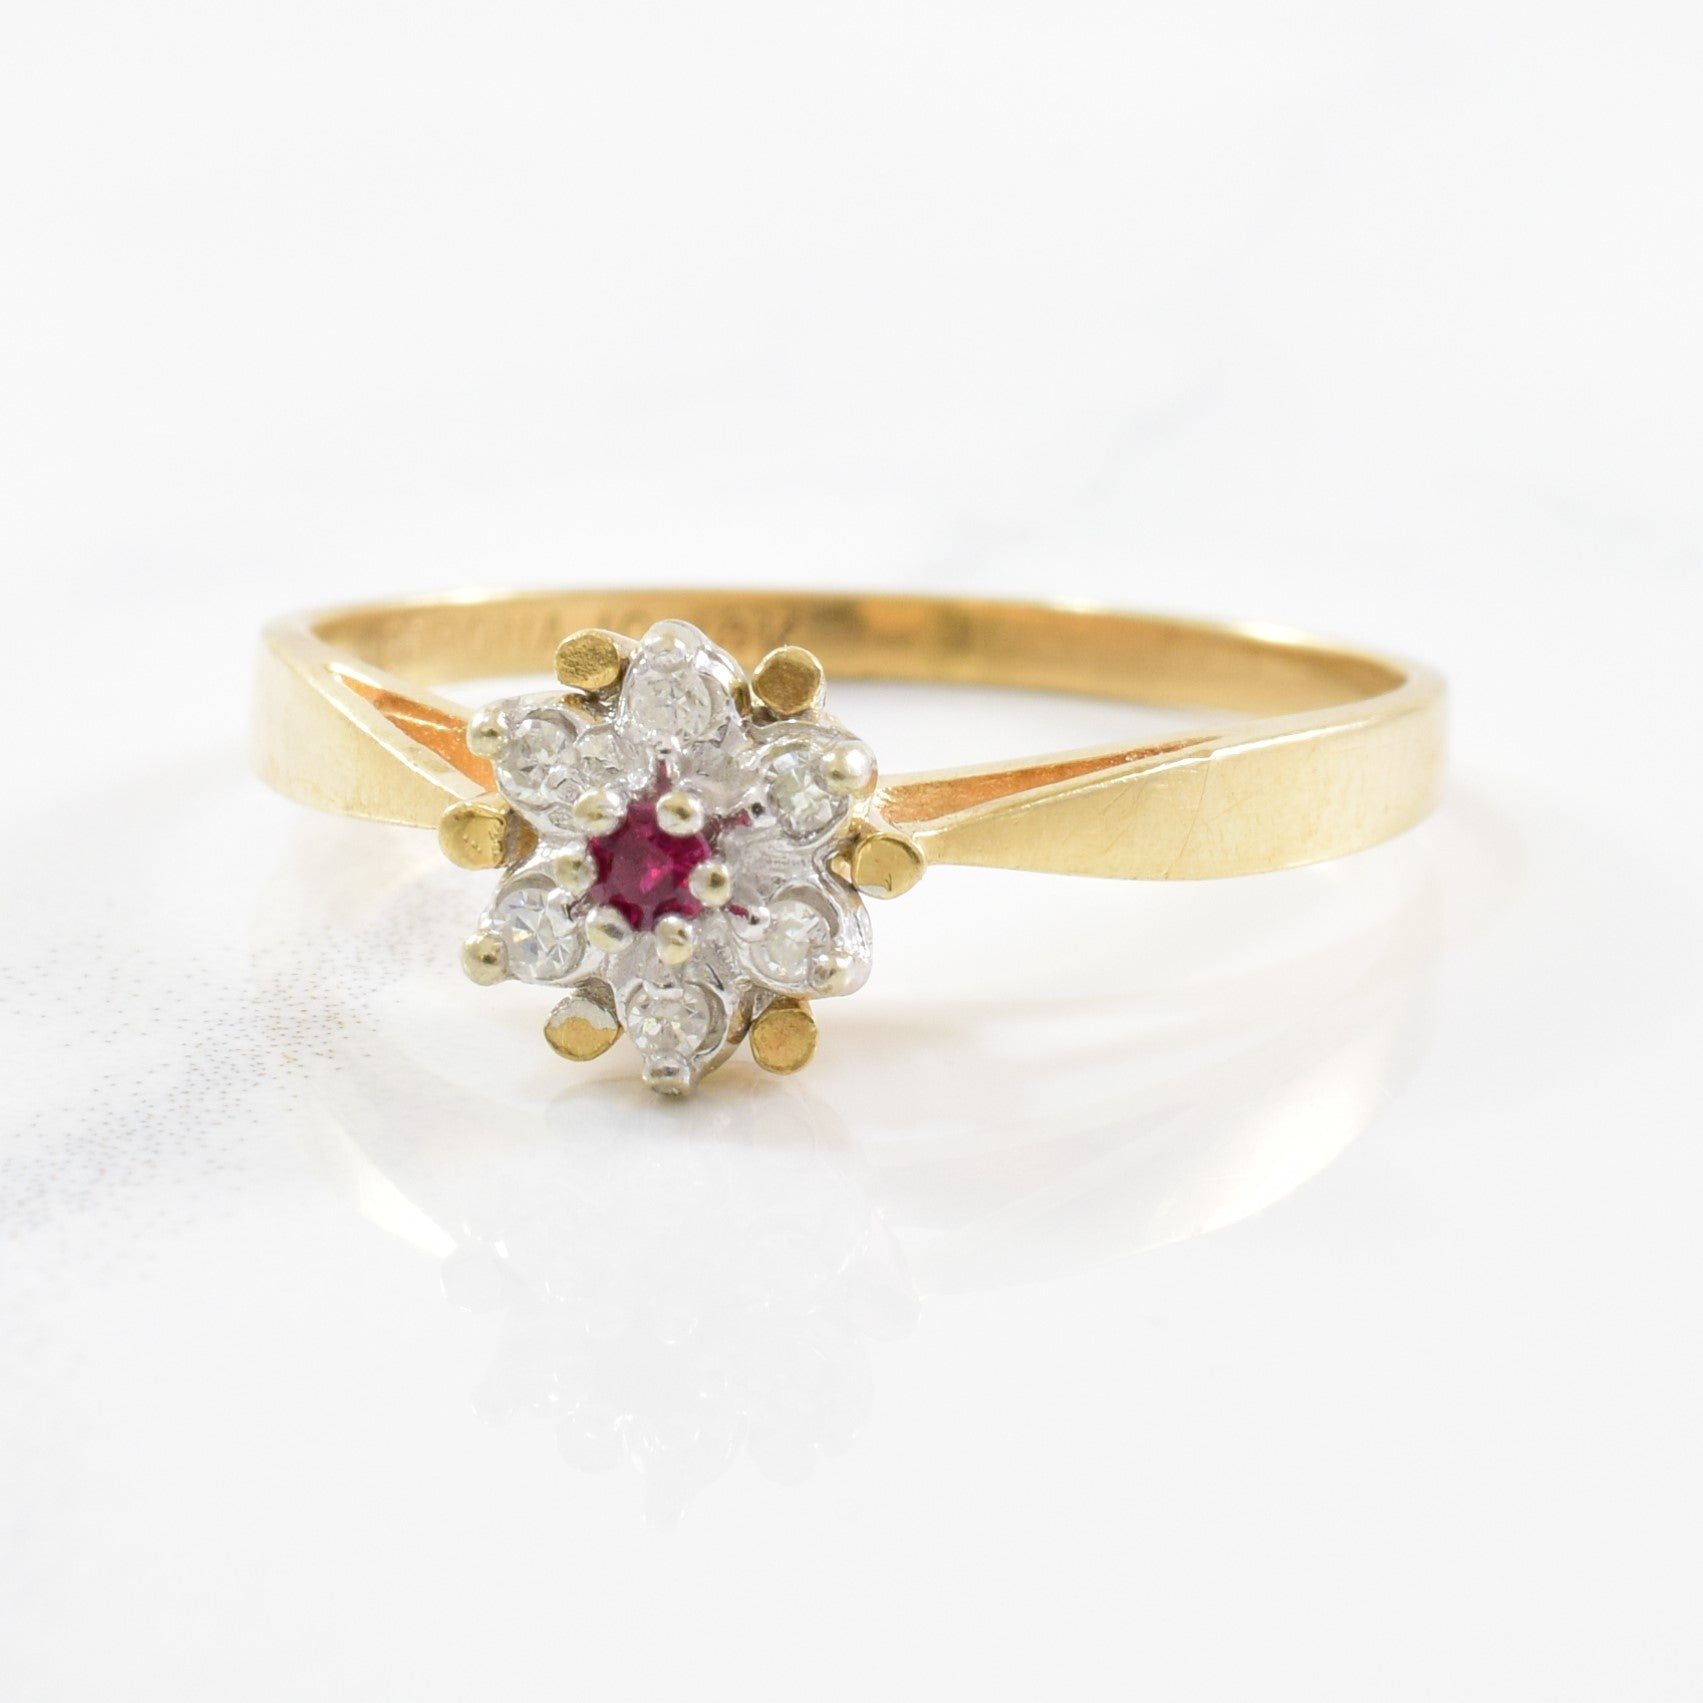 Ruby & Diamond Floral Ring | 0.03ct, 0.04ctw | SZ 6.25 |